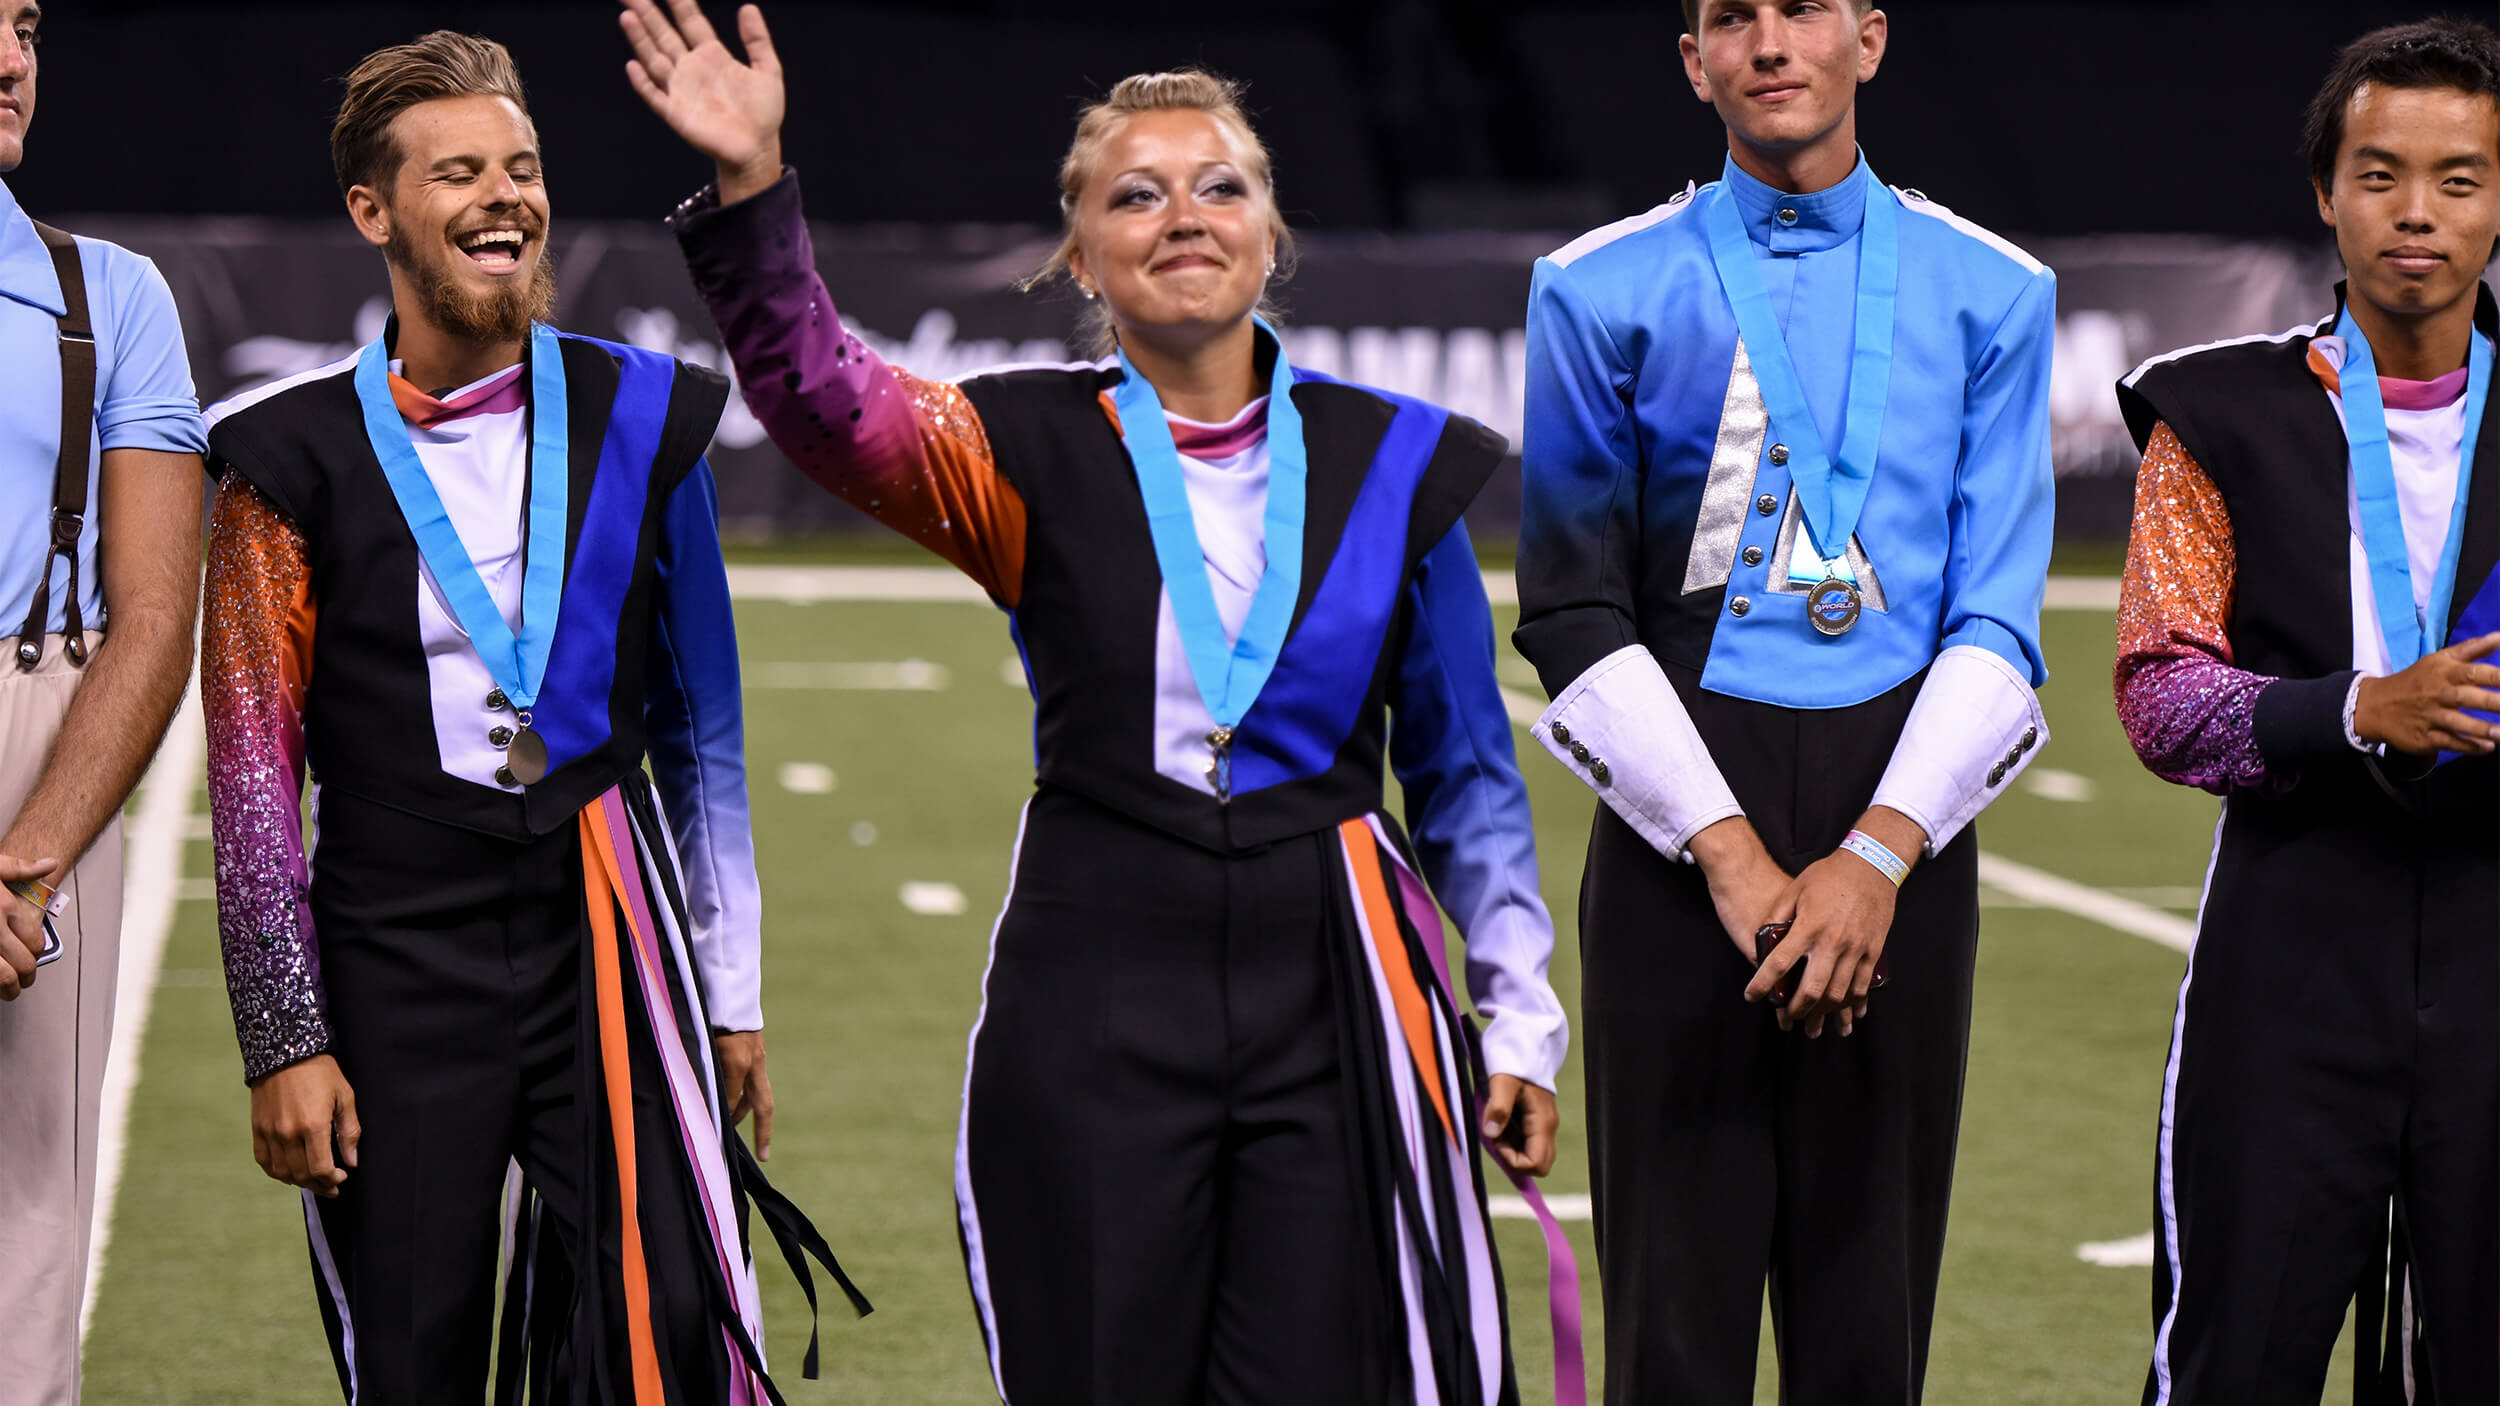 DCI Performers Showcase: Paving the way for women percussionists